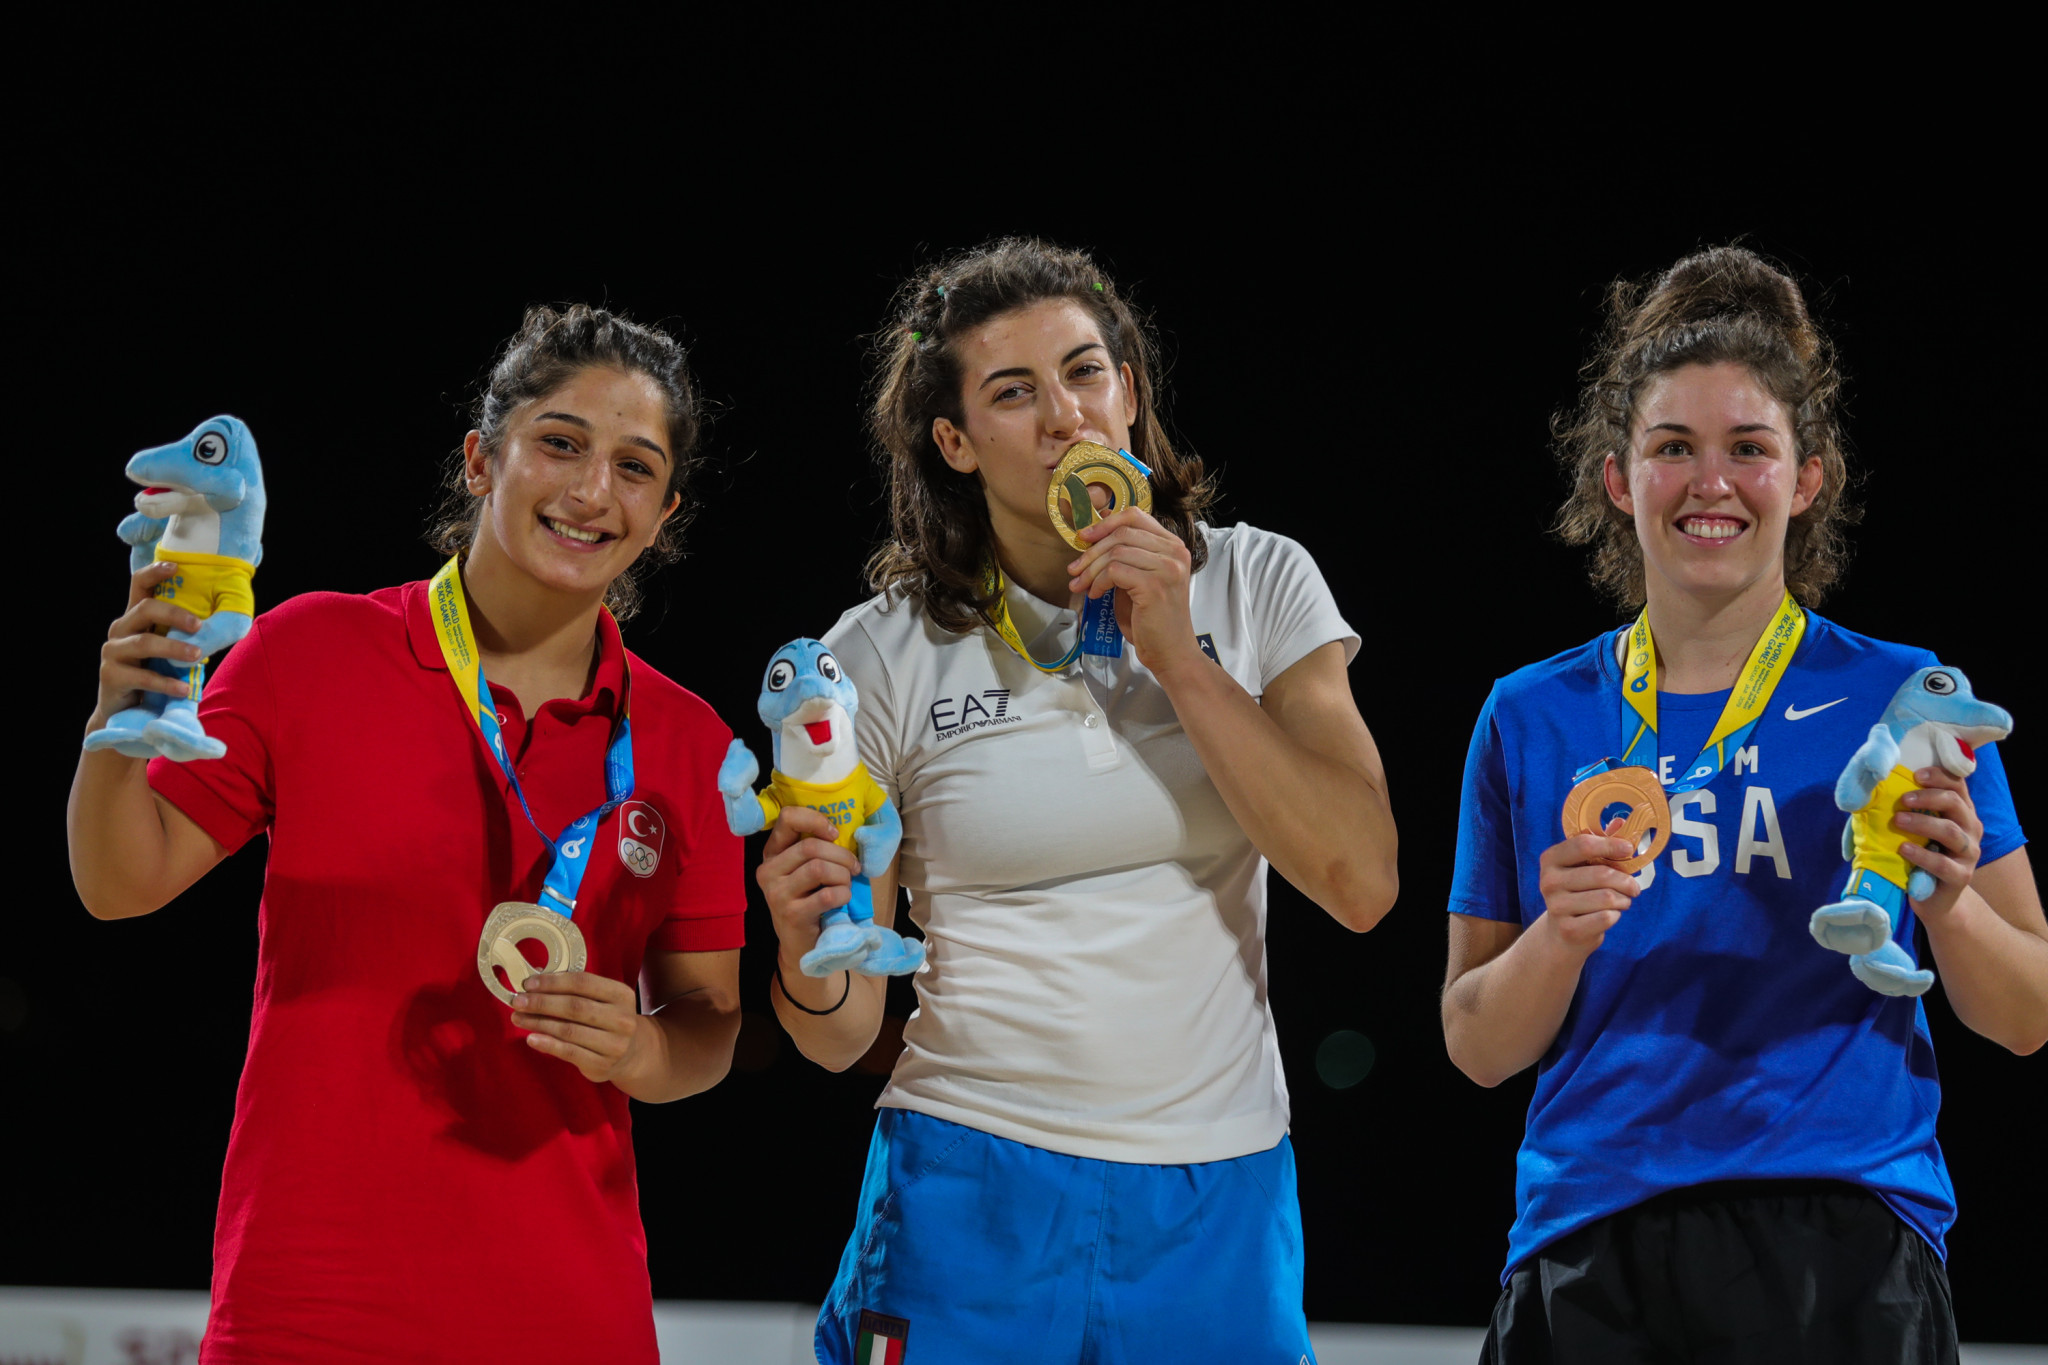 Italy's Francesca Indelicato was so happy with her gold medal she claimed she was going to sleep with it tonight ©ANOC World Beach Games